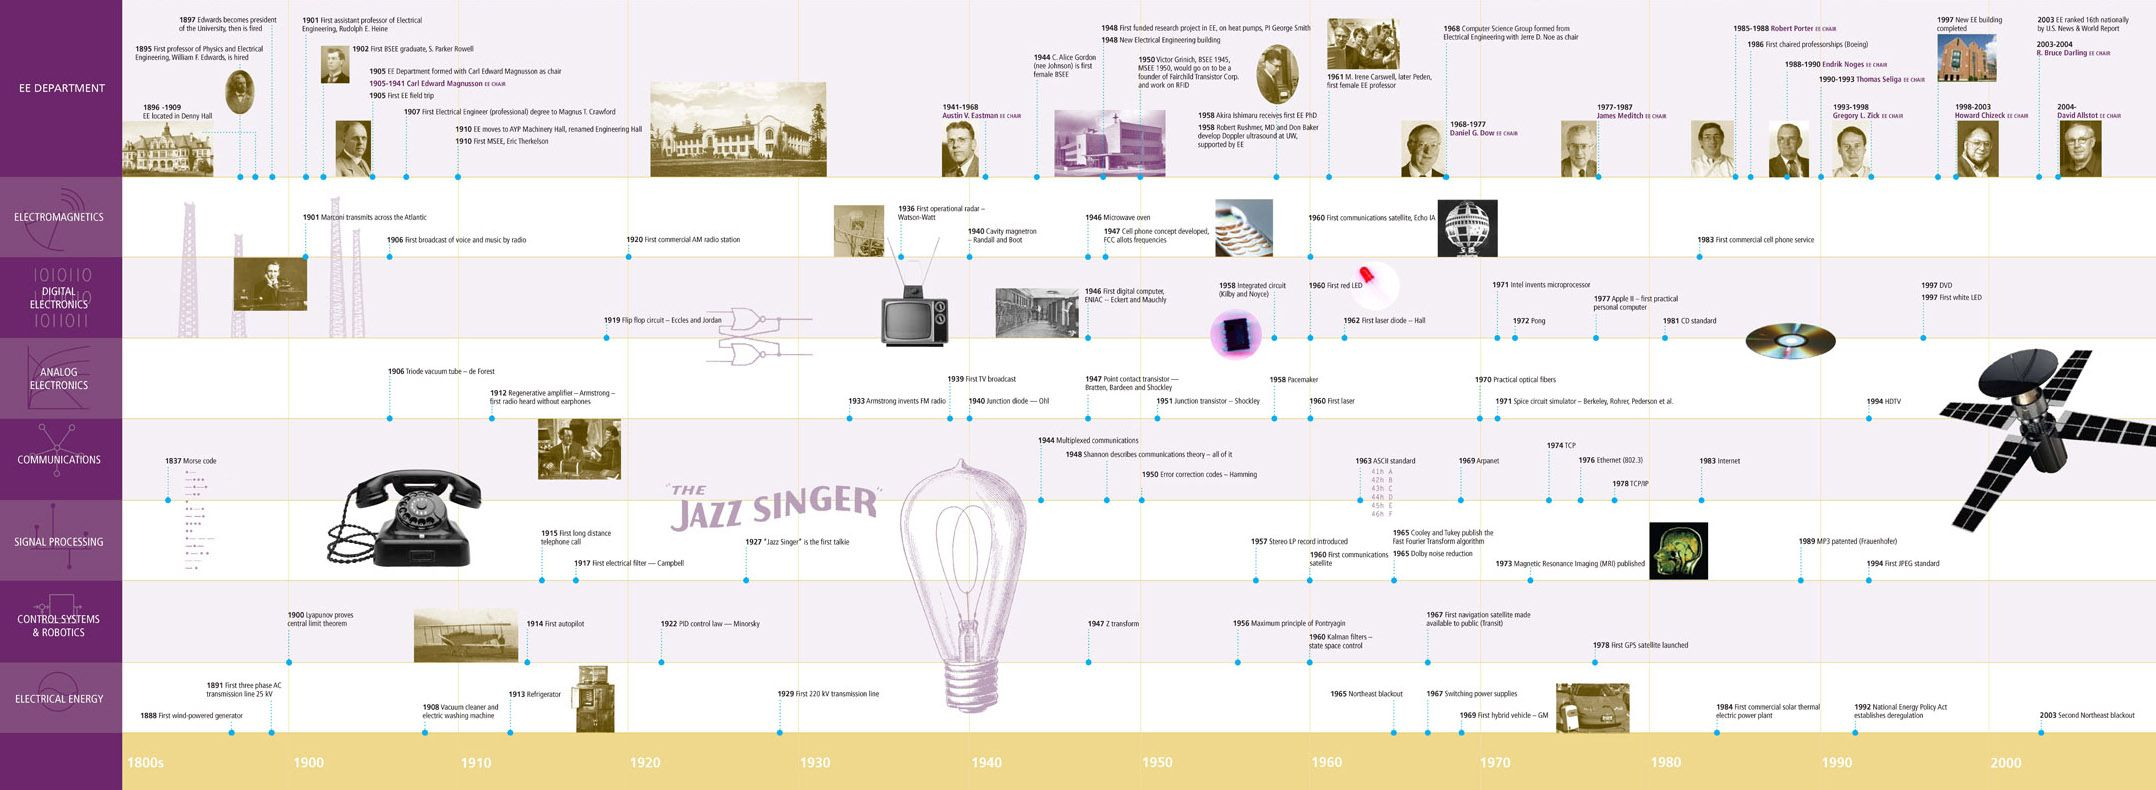 graphical timeline of the last 100 years of electrical